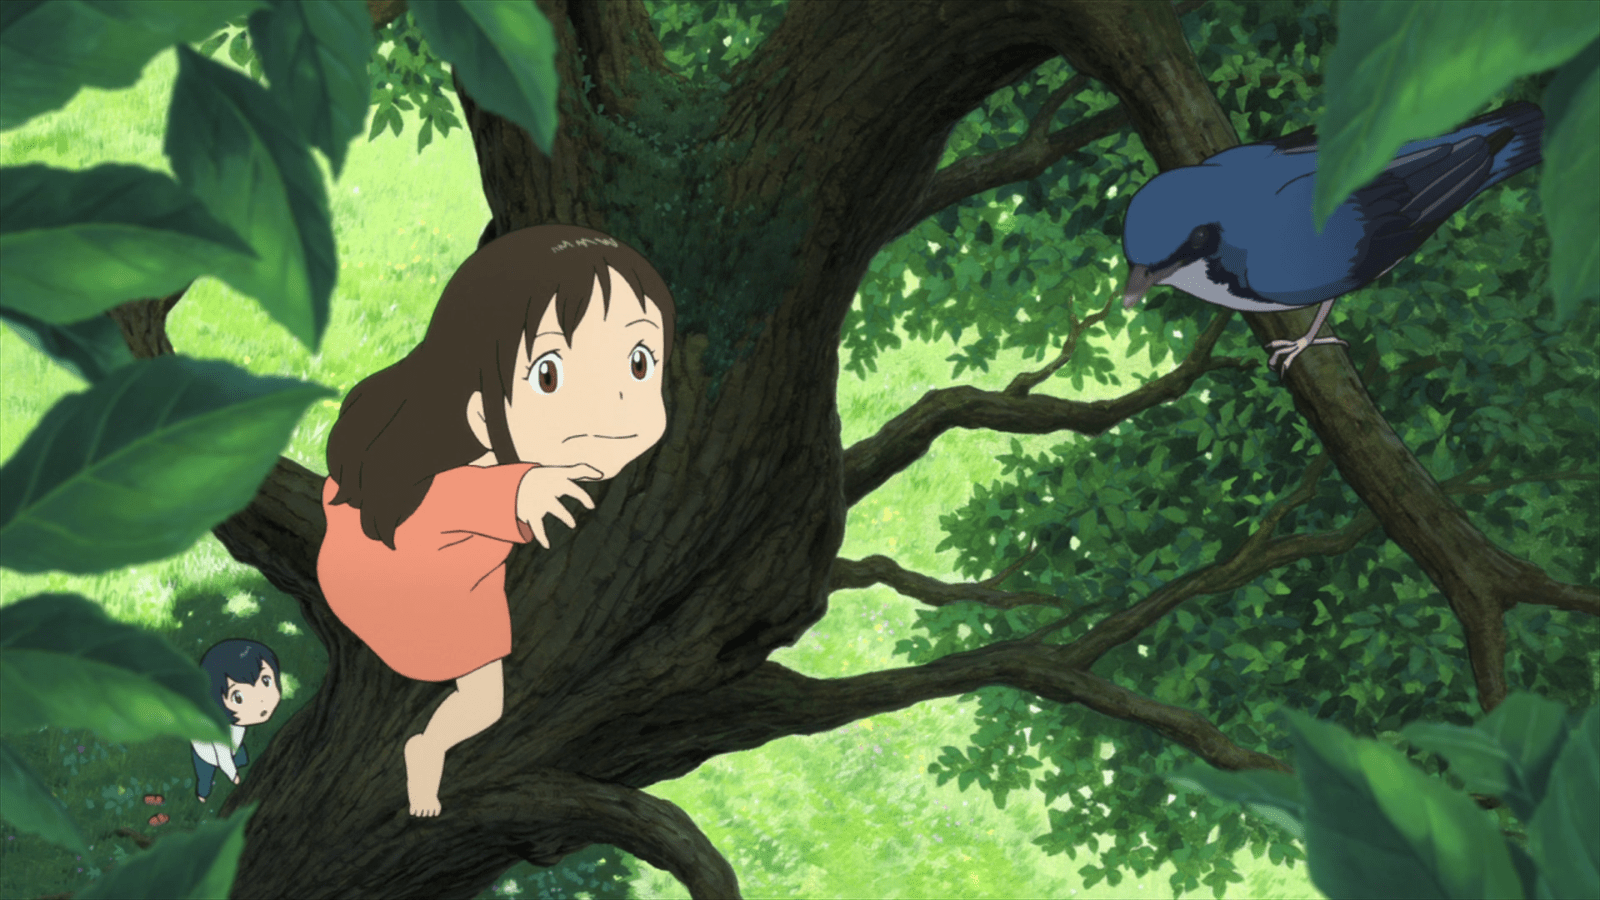 Wallpaper Anime Girl Cool Ame And The Bird Wolf Children Wallpaper And Background